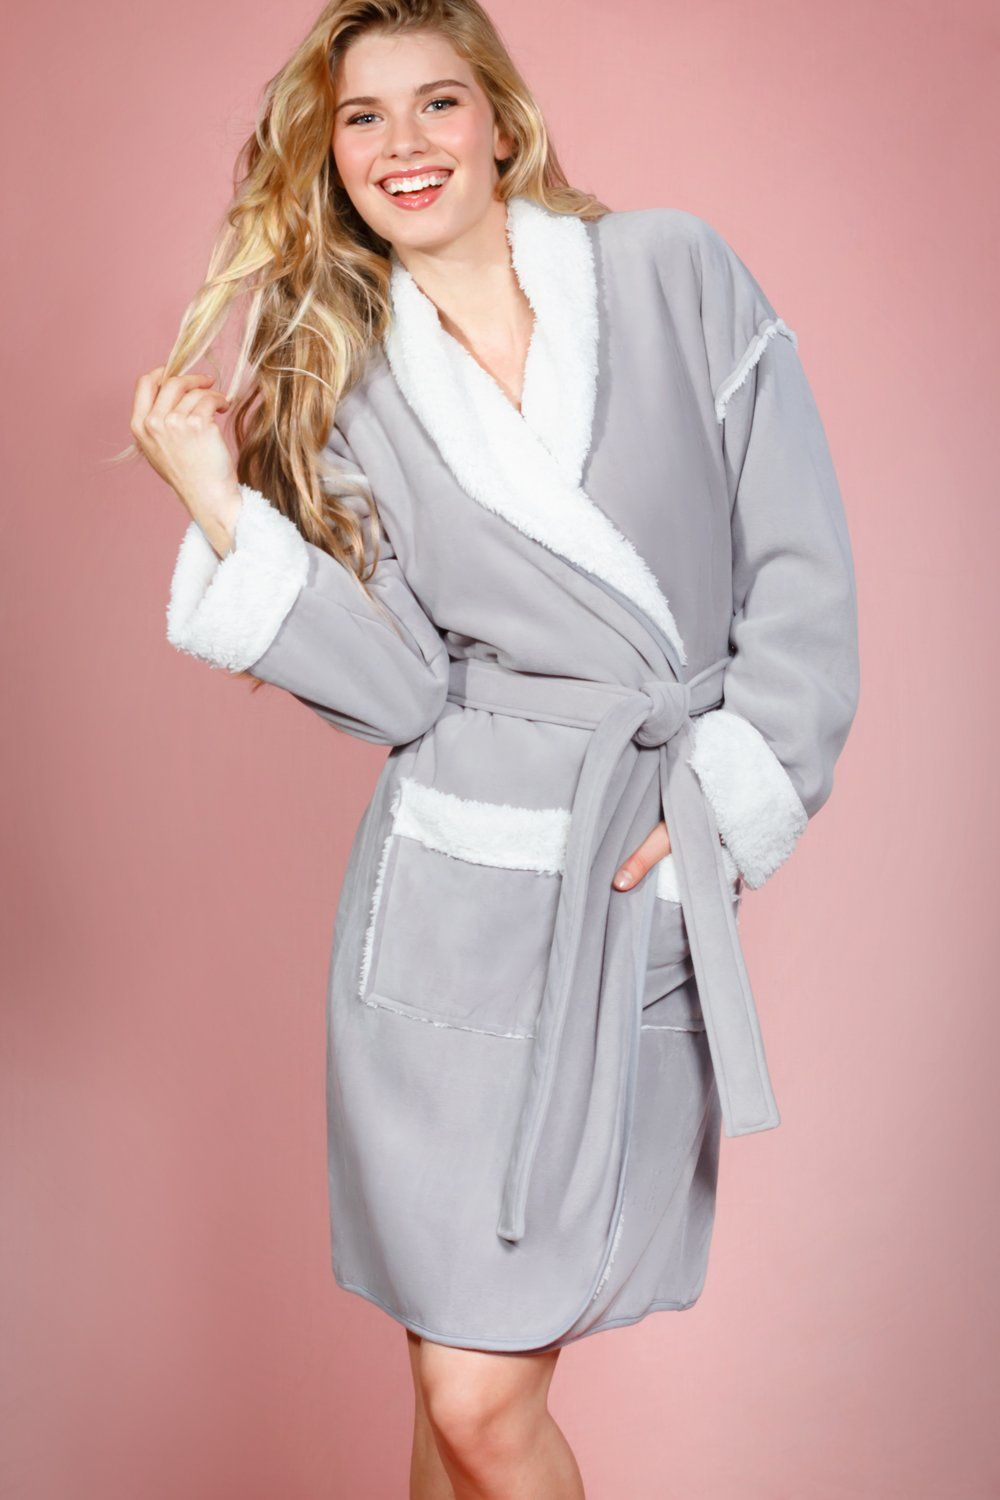 a25976e54a Suede Feel Fabric Coat Robe with Sherpa Lining (Grey). Soft and warm ...